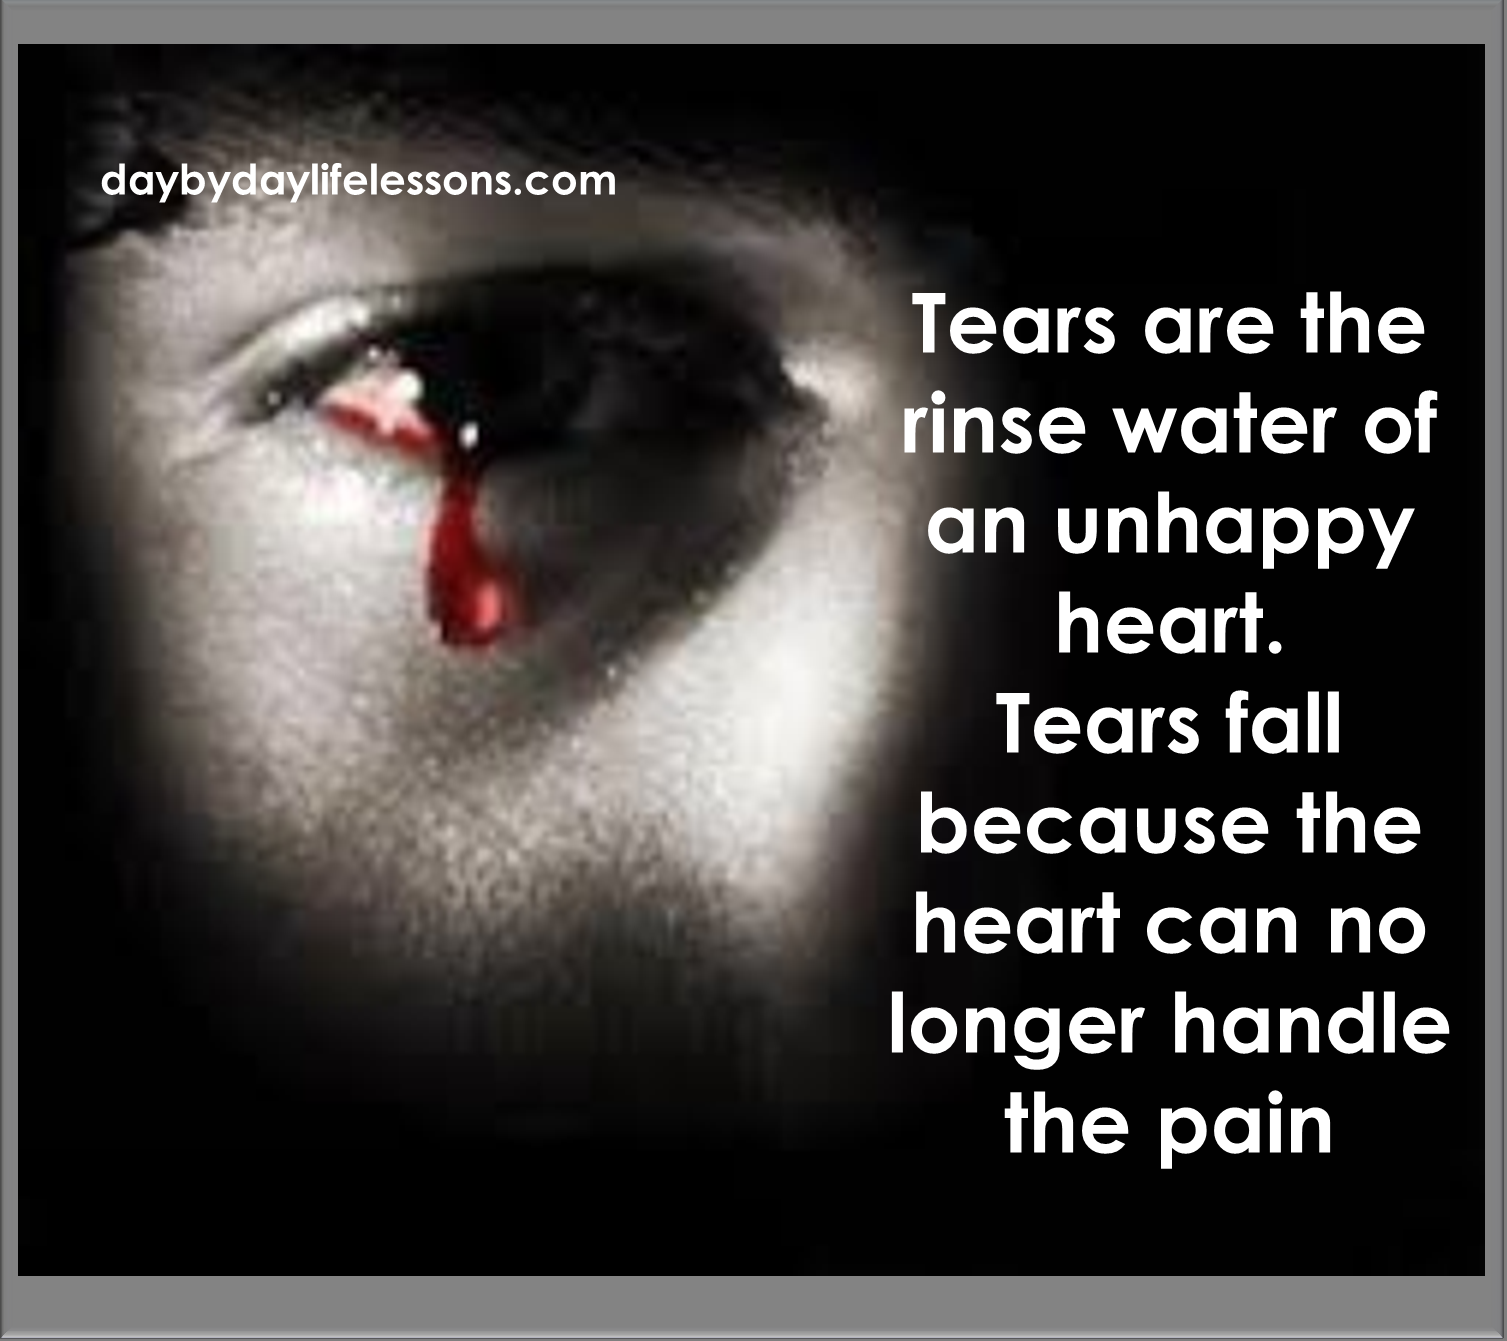 Tears Are The Rinse Water Of An Unhappy Heart Day By Day Life Lessons